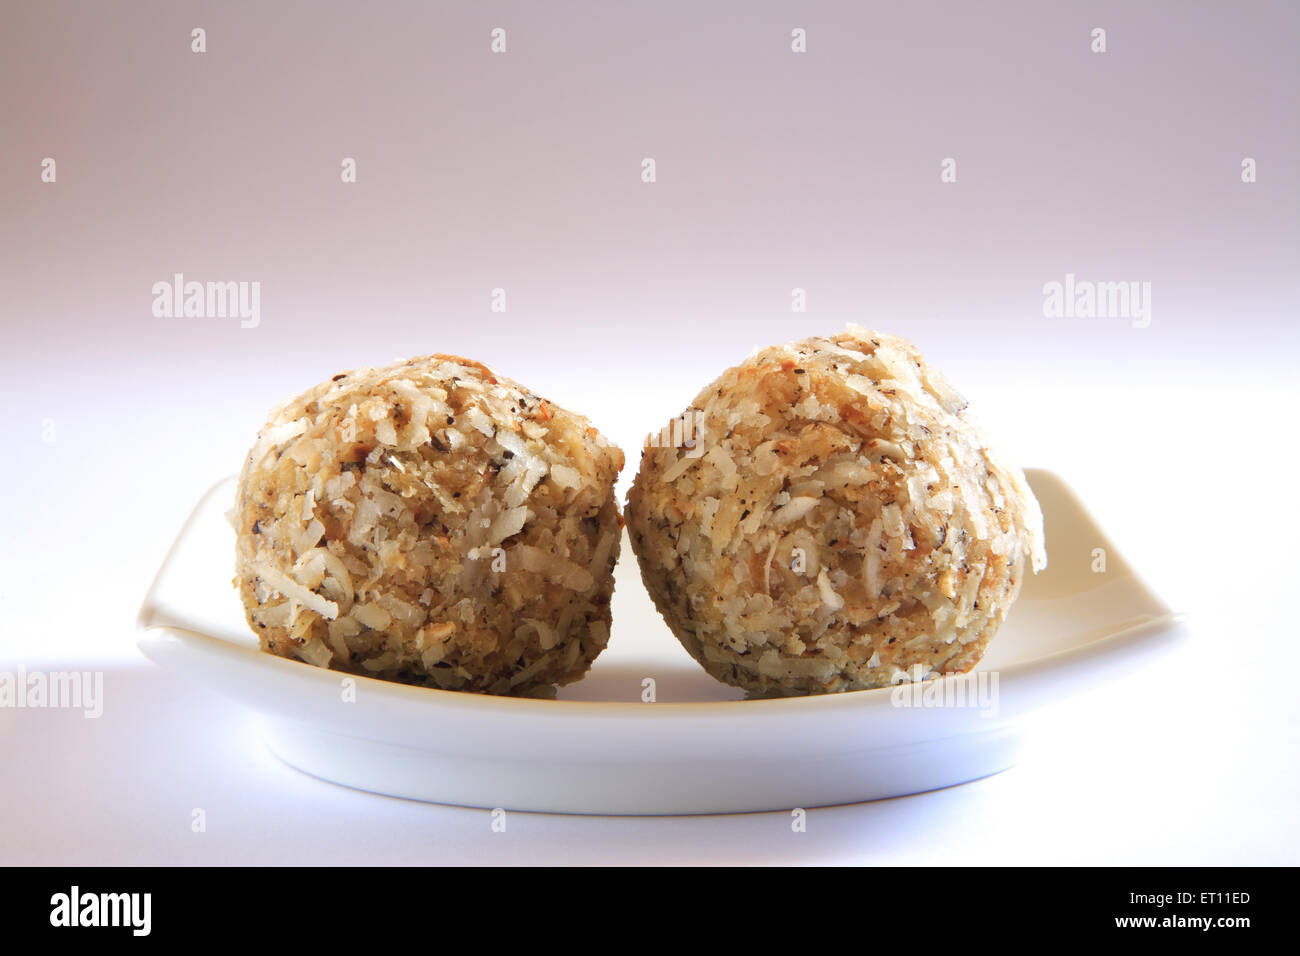 Mithai ; gond laddoos in tray on white background - Stock Image